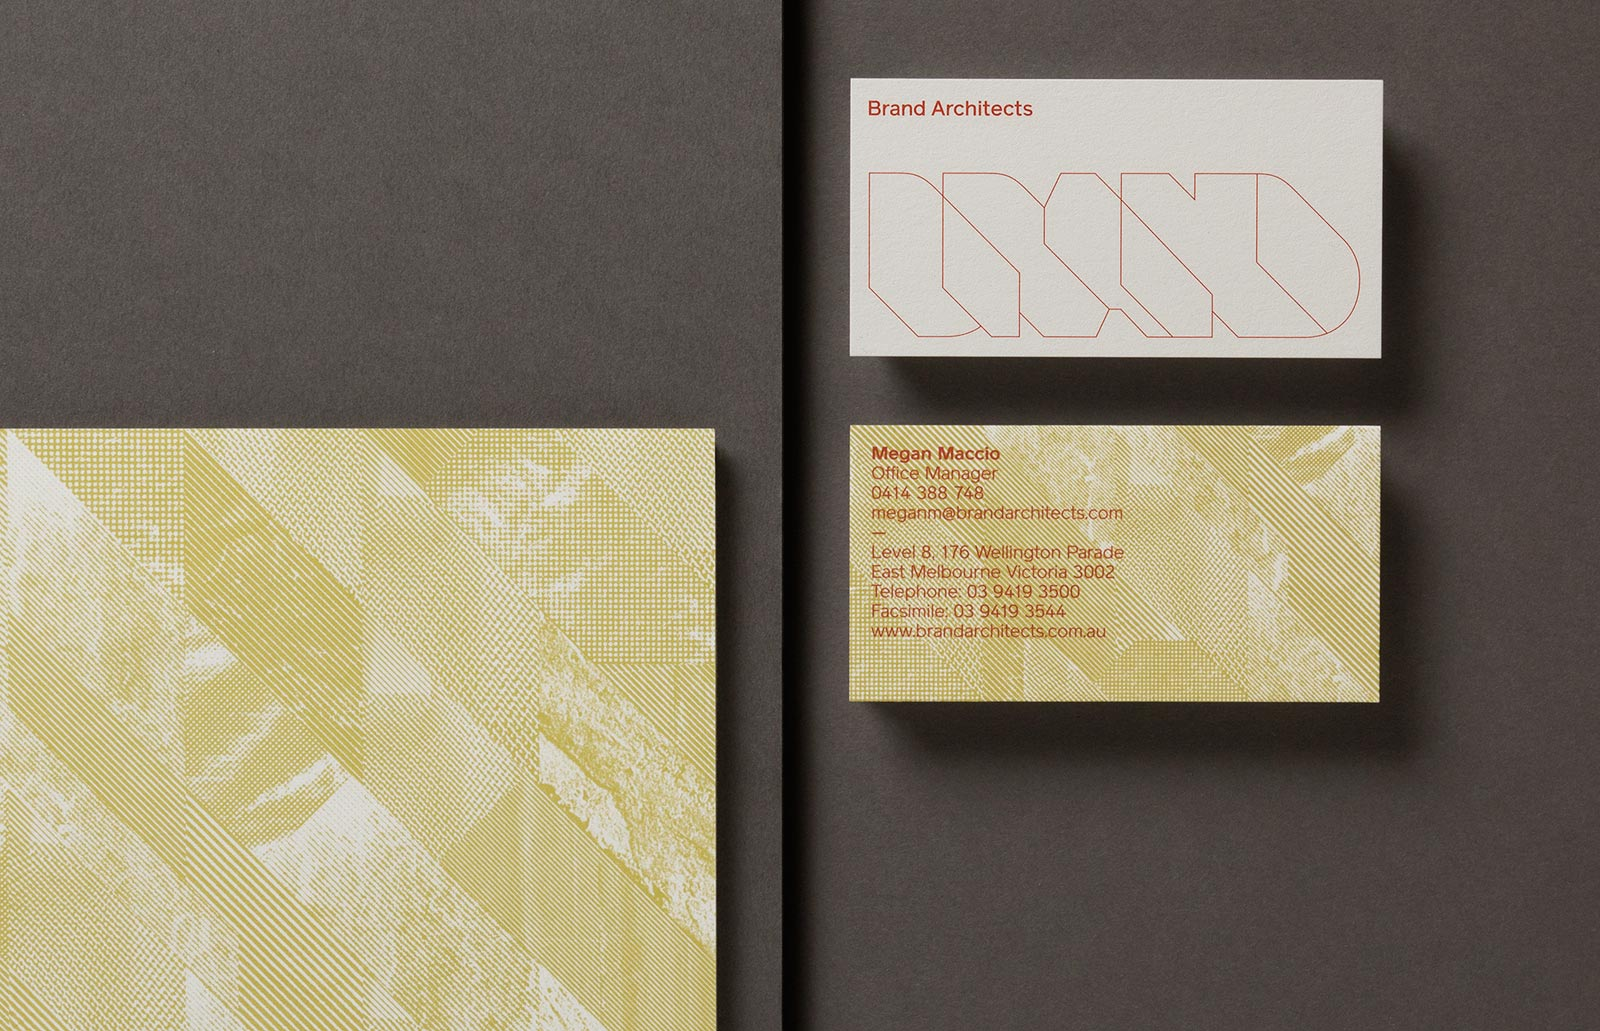 Brand Architects Identity / Hofstede Design